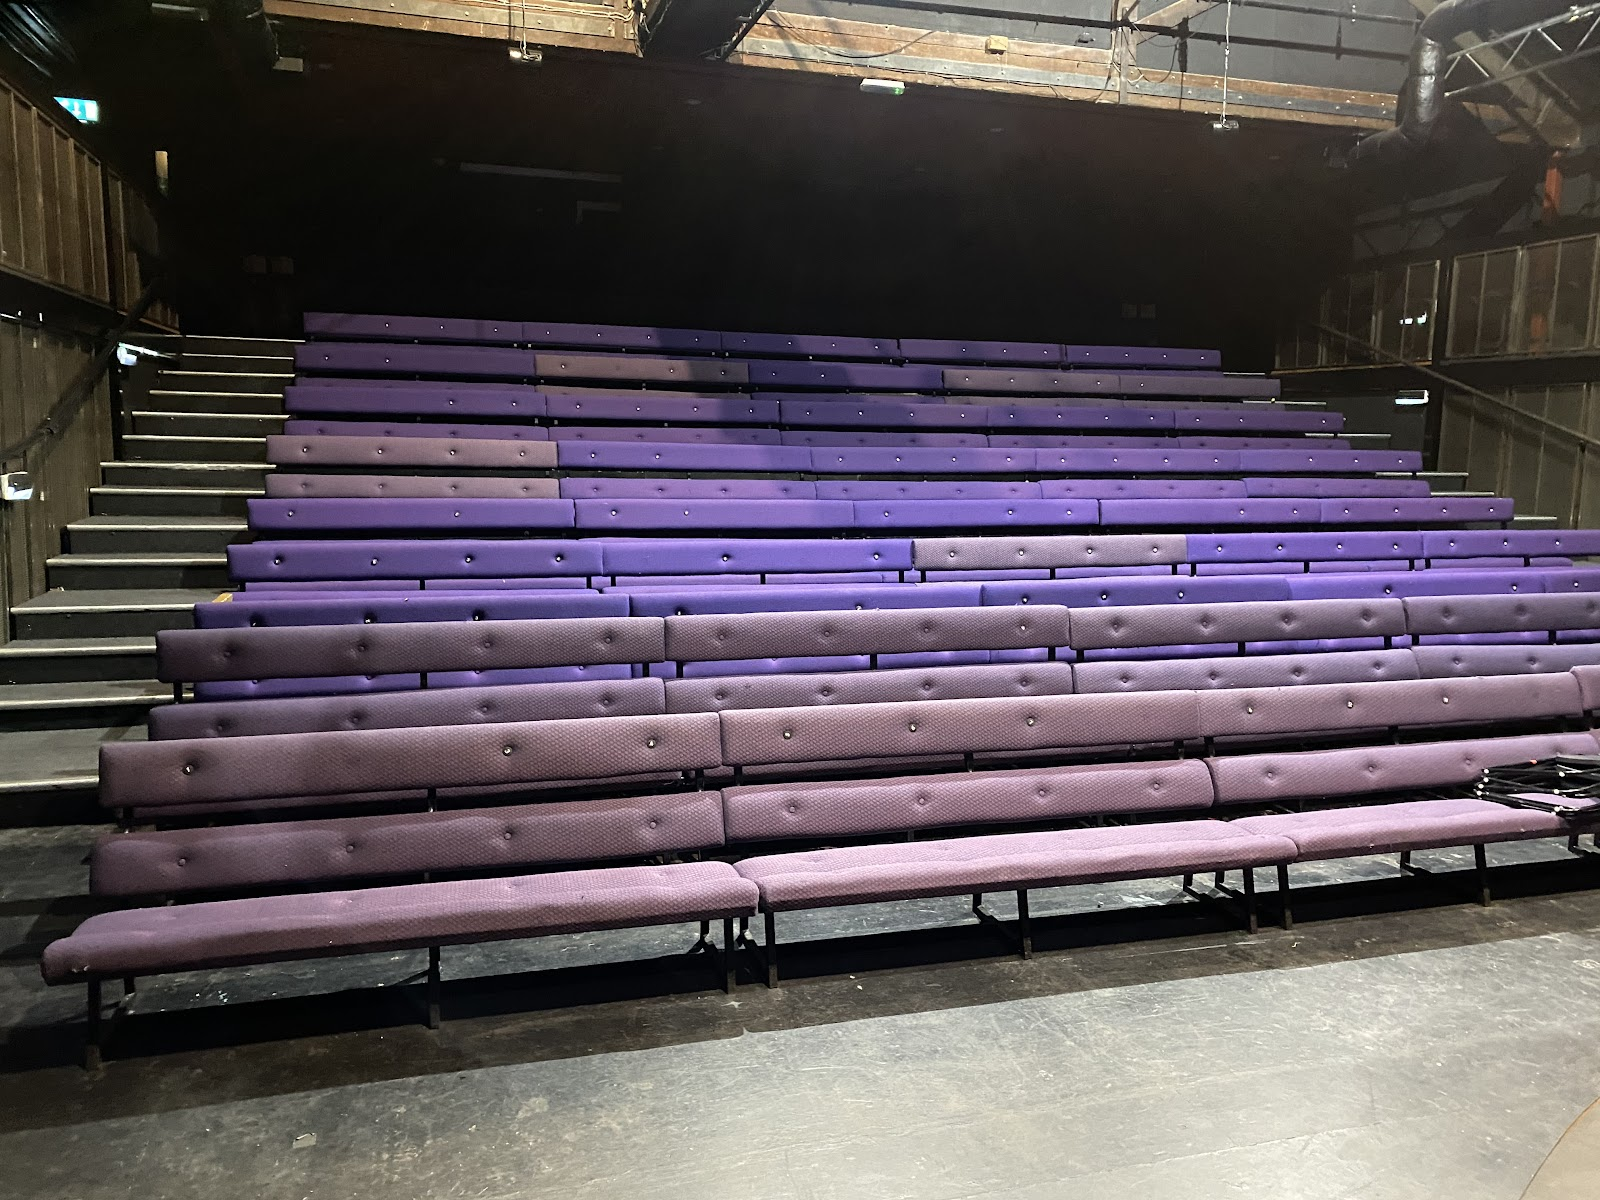 The seats are cushioned benches. The entrance to the venue is from the top of the steps of the seating rake. The accessible entrance is to the right hand side.